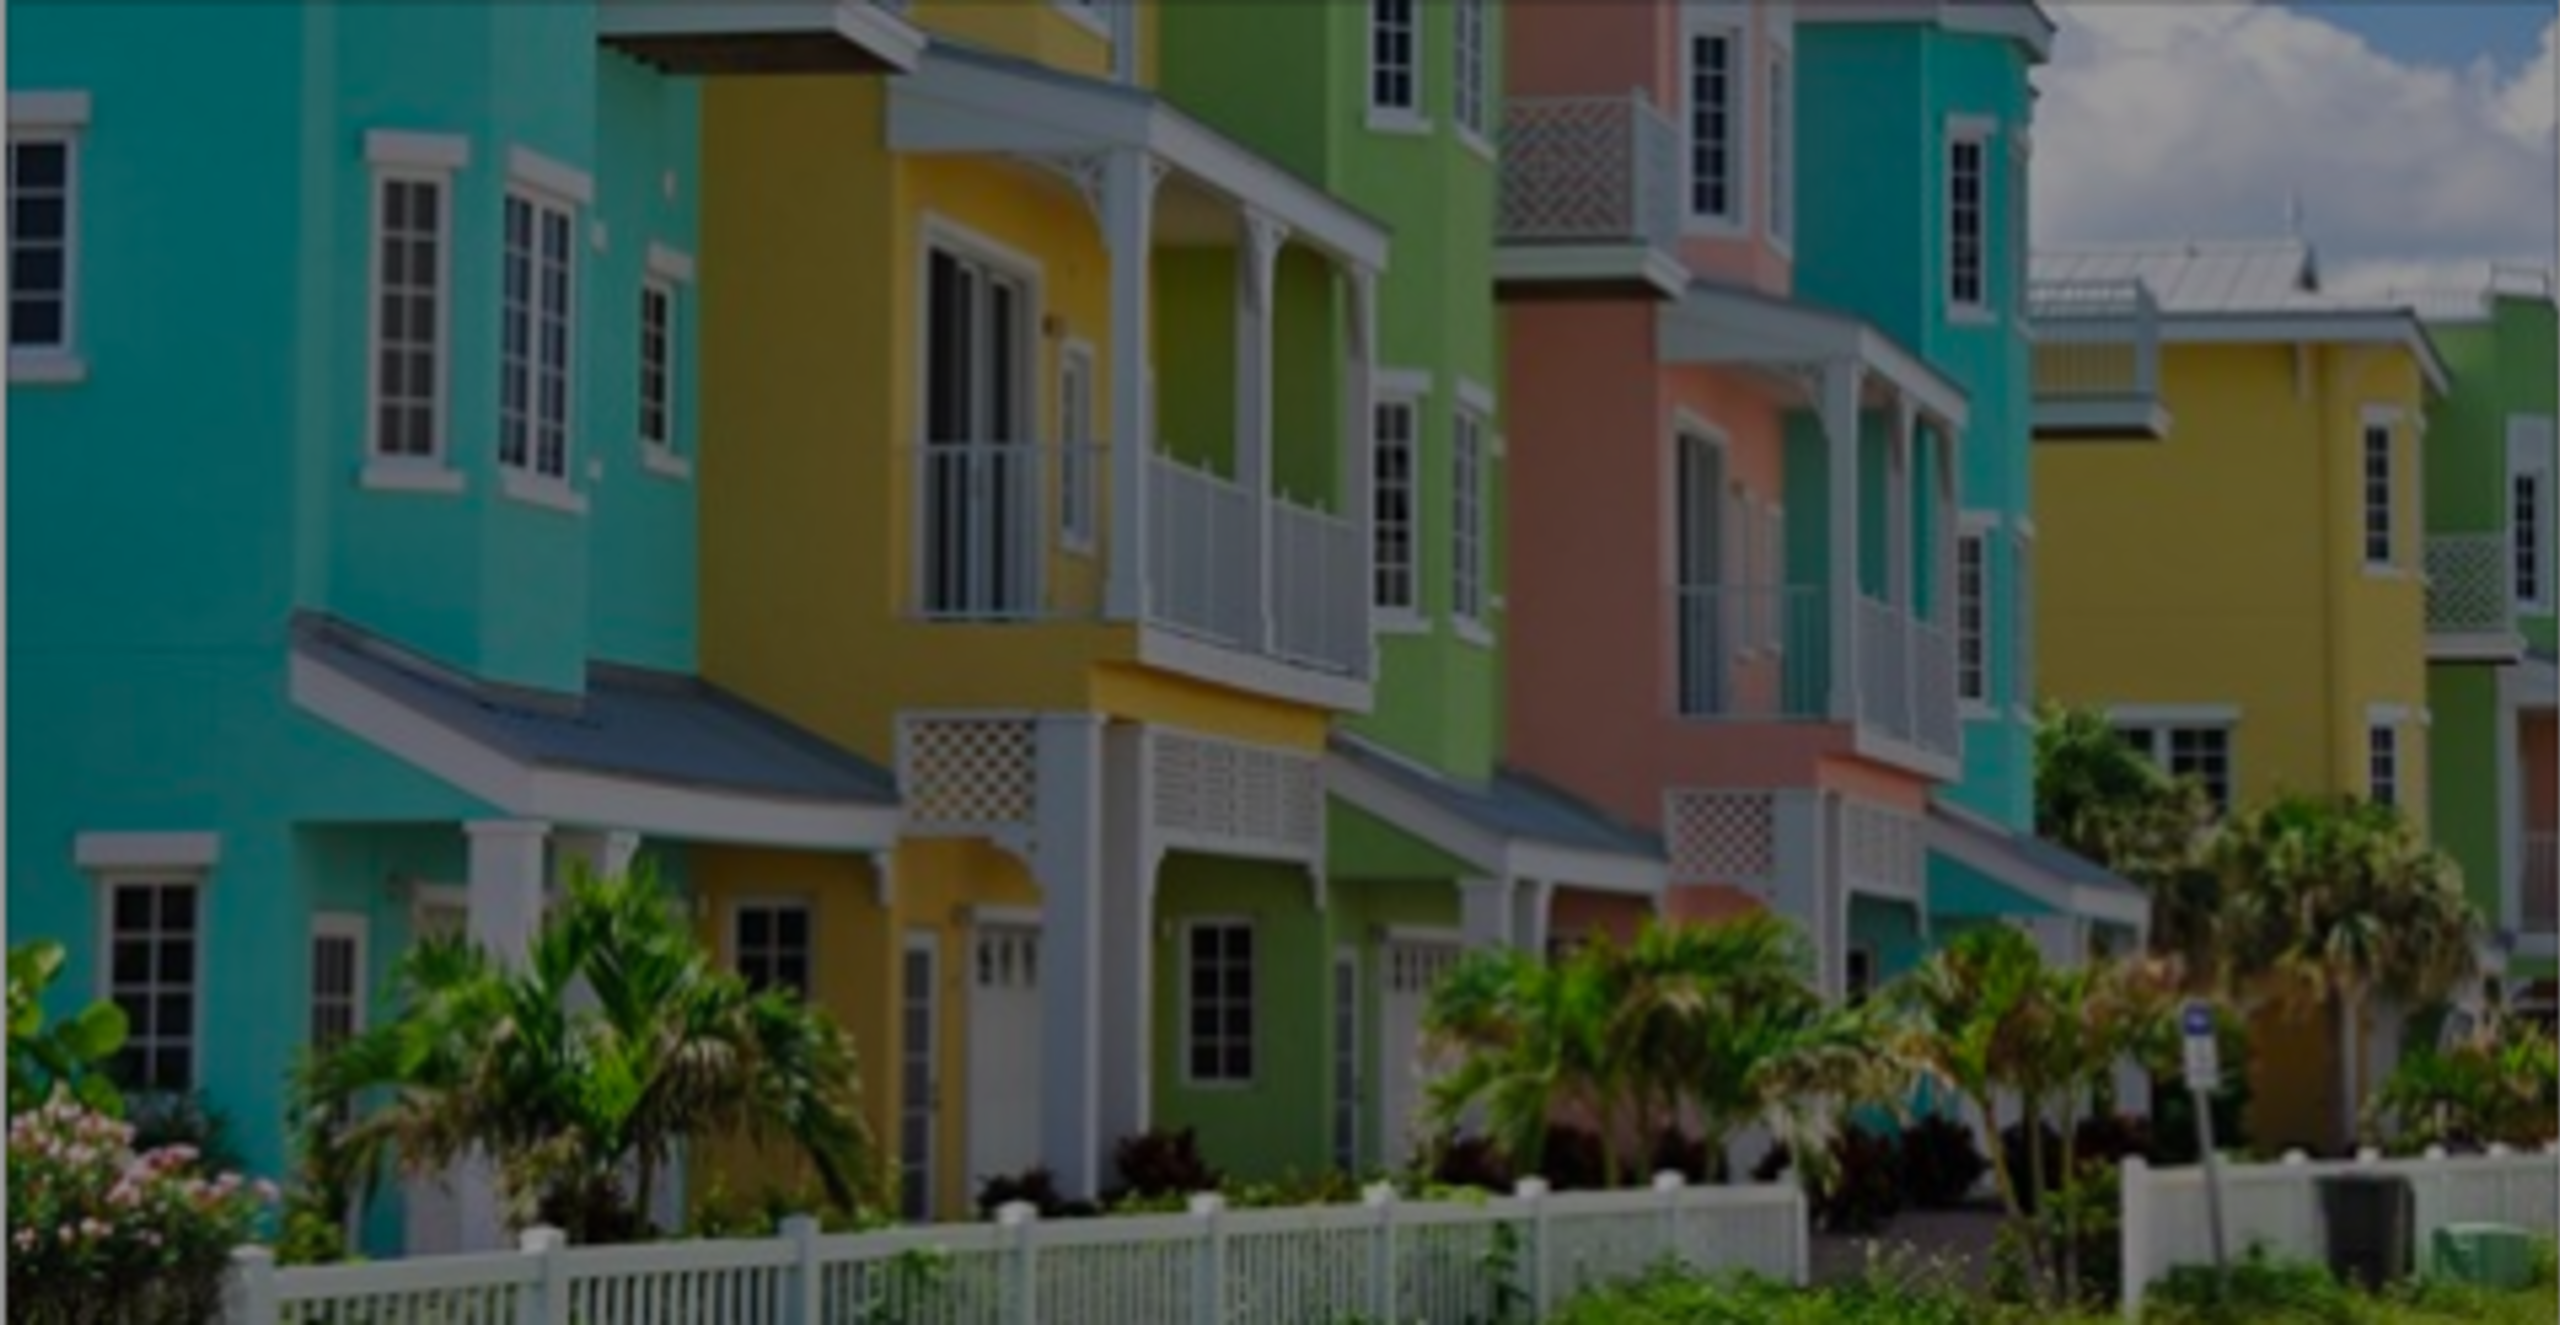 Single-Family Home or Condo: Which is Best for You?